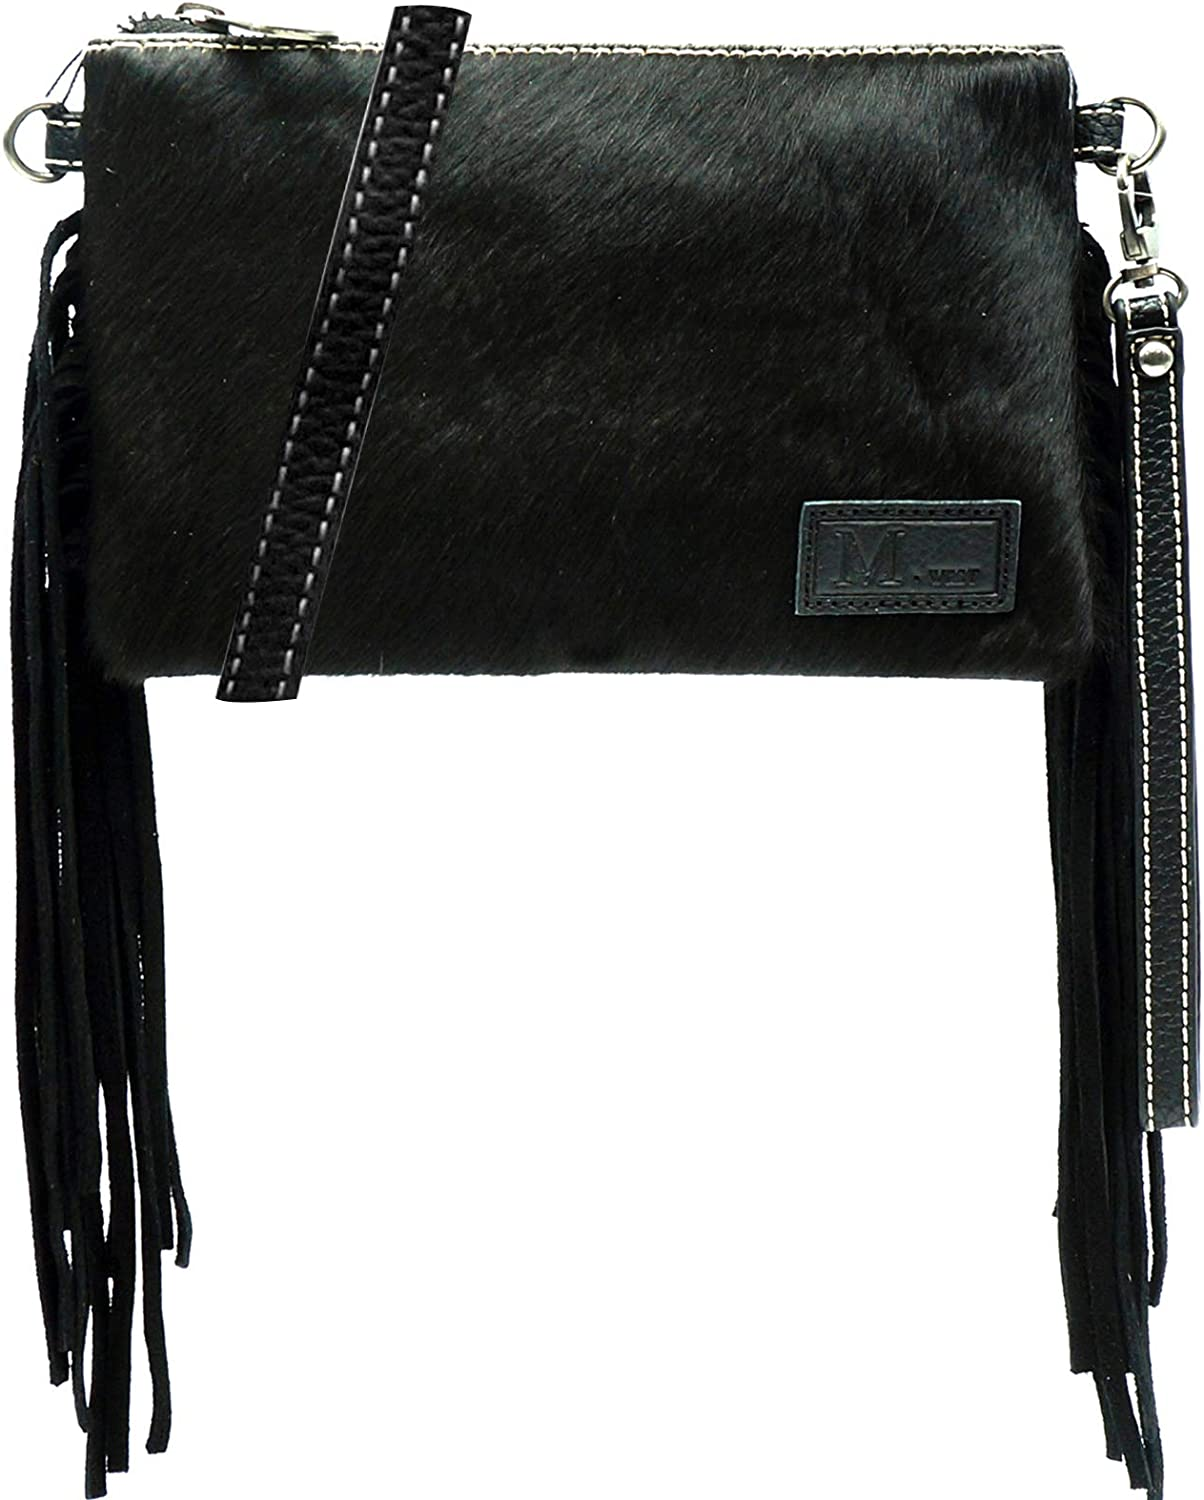 Montana West Cowhair Leather Crossbody Bag Cell Phone Purse Wallet For Women Western Cowgirl Small Clutch Shoulder Bag